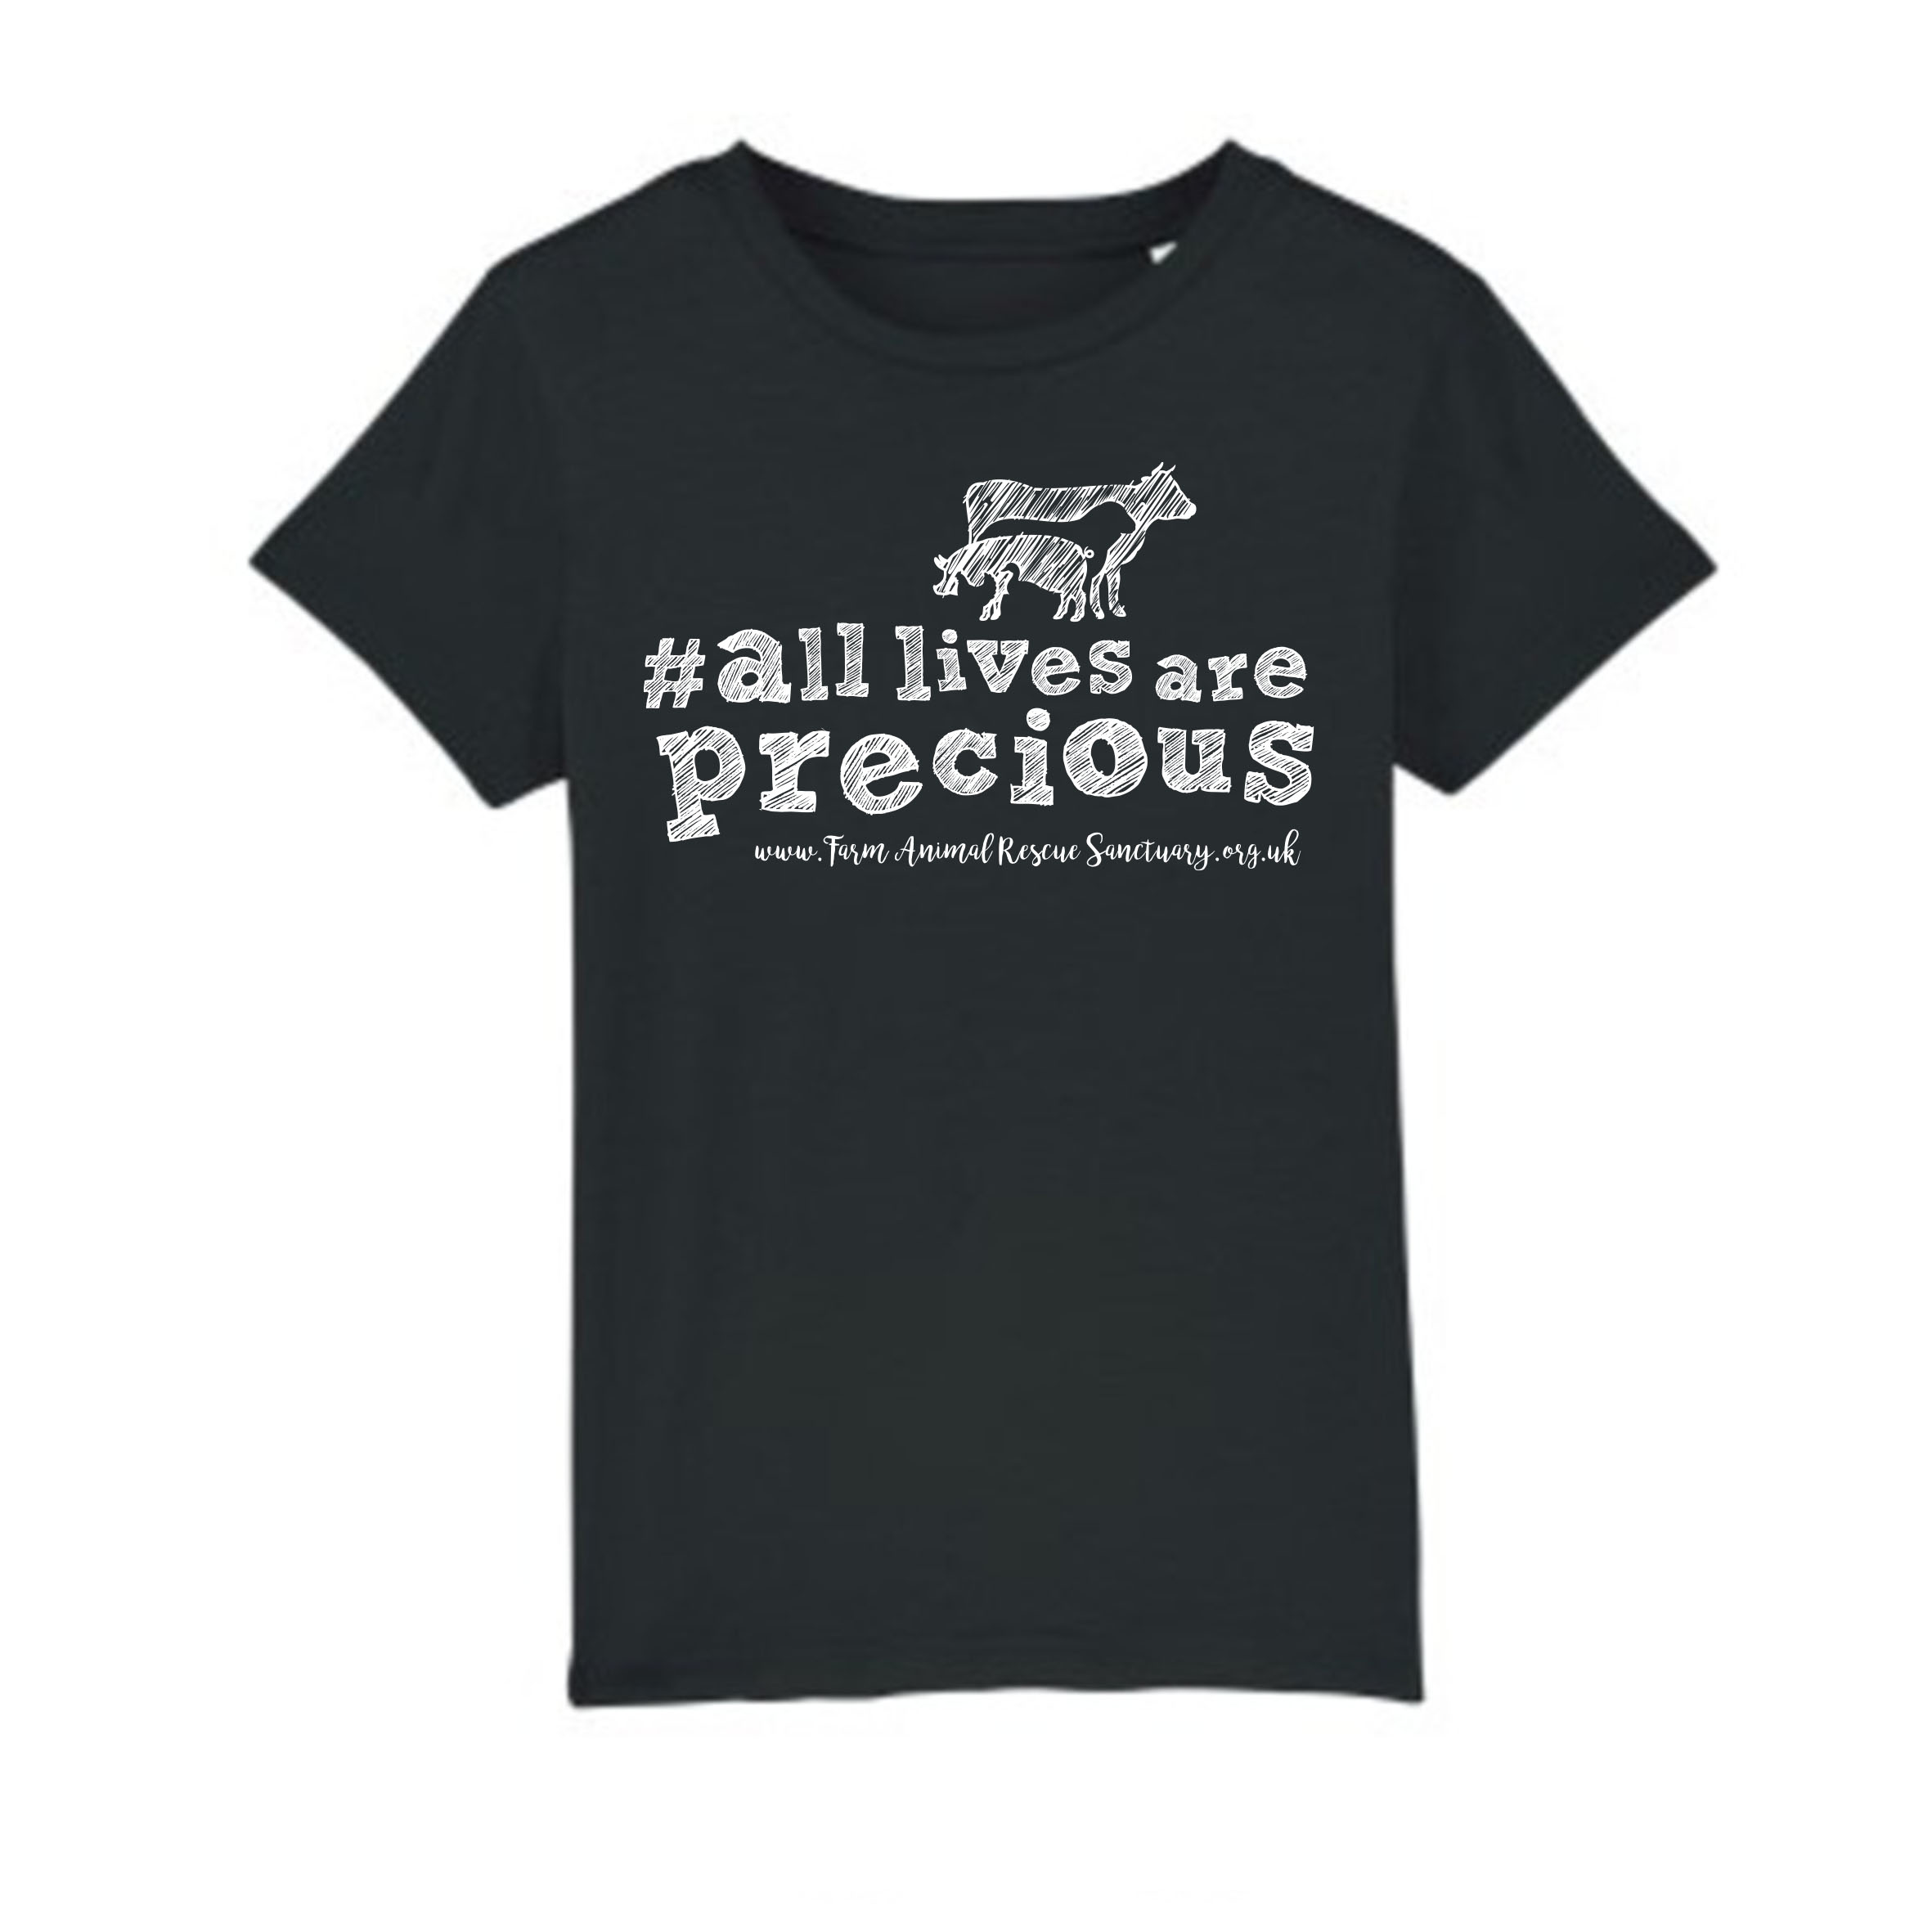 FARS Kids 'All lives are Precious' t-shirt front